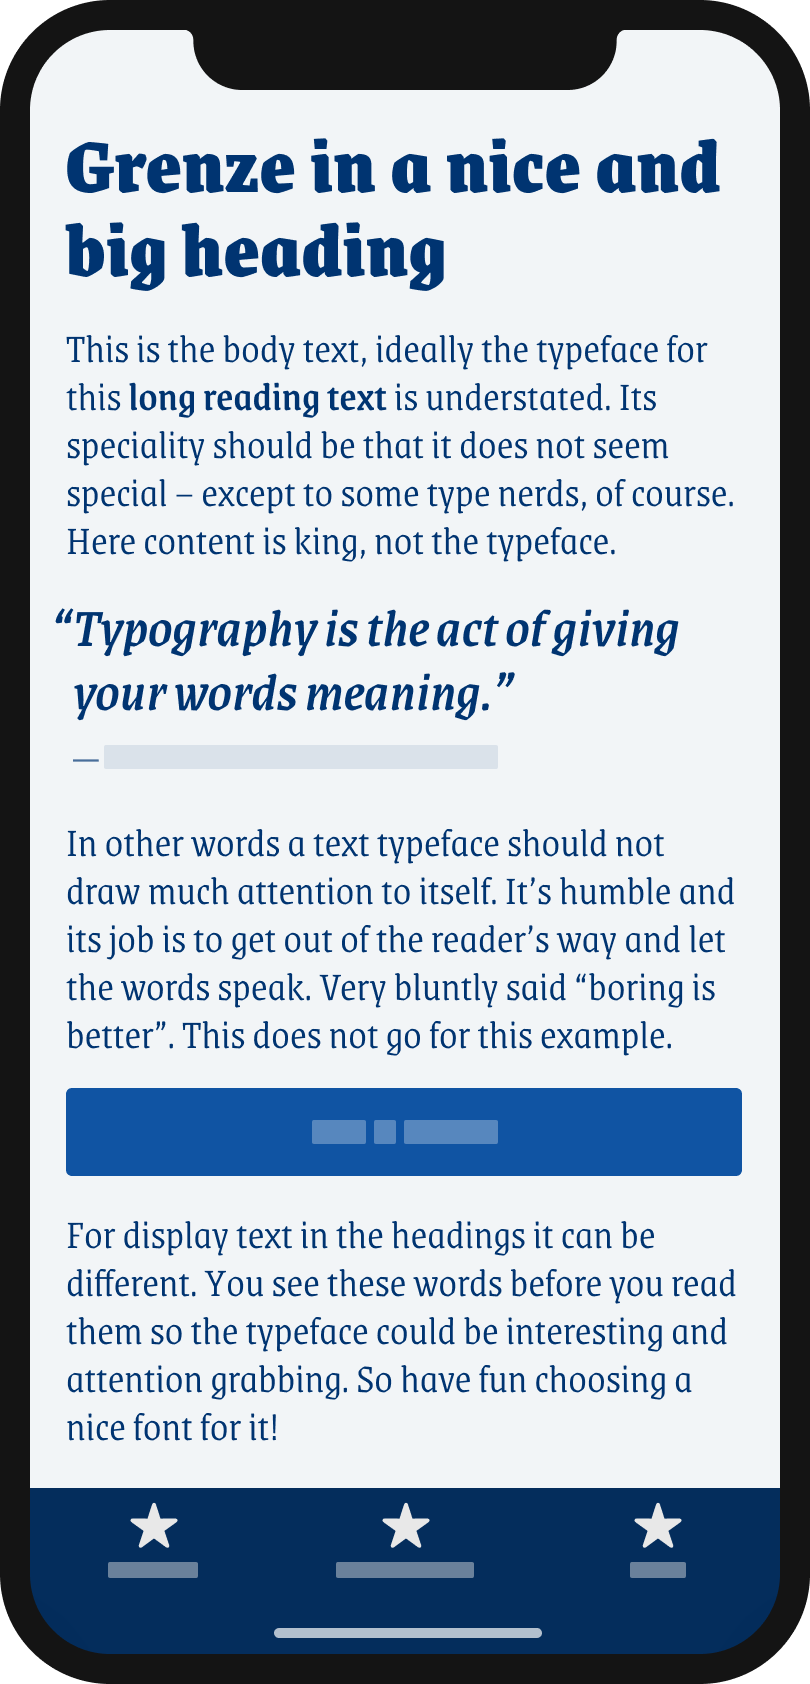 The Blackletter themed looking display typeface Grenze on a mobile phone in a headline and pull quote, the body text, and the label of a button.